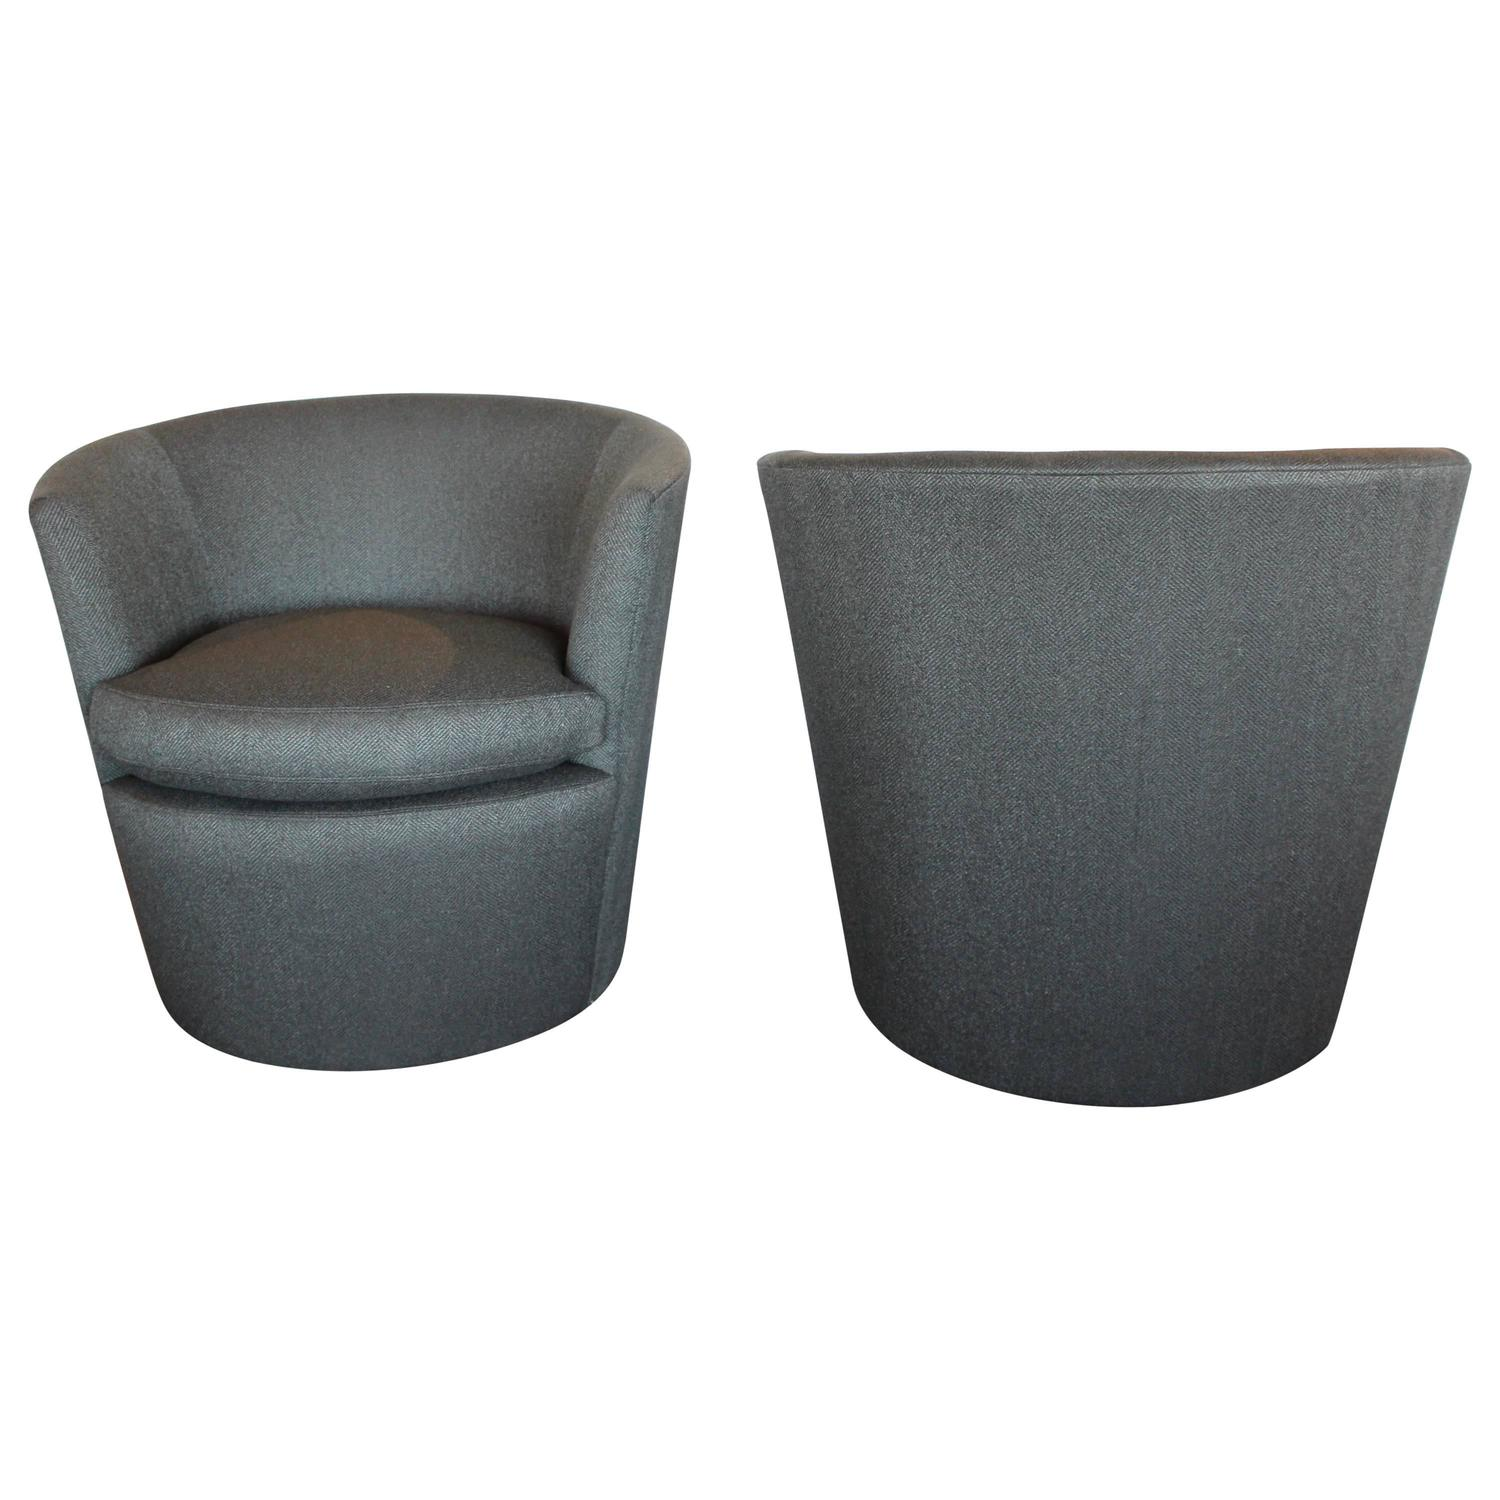 Modern Stain Resistant Fabric Swivel Chairs At 1stdibs